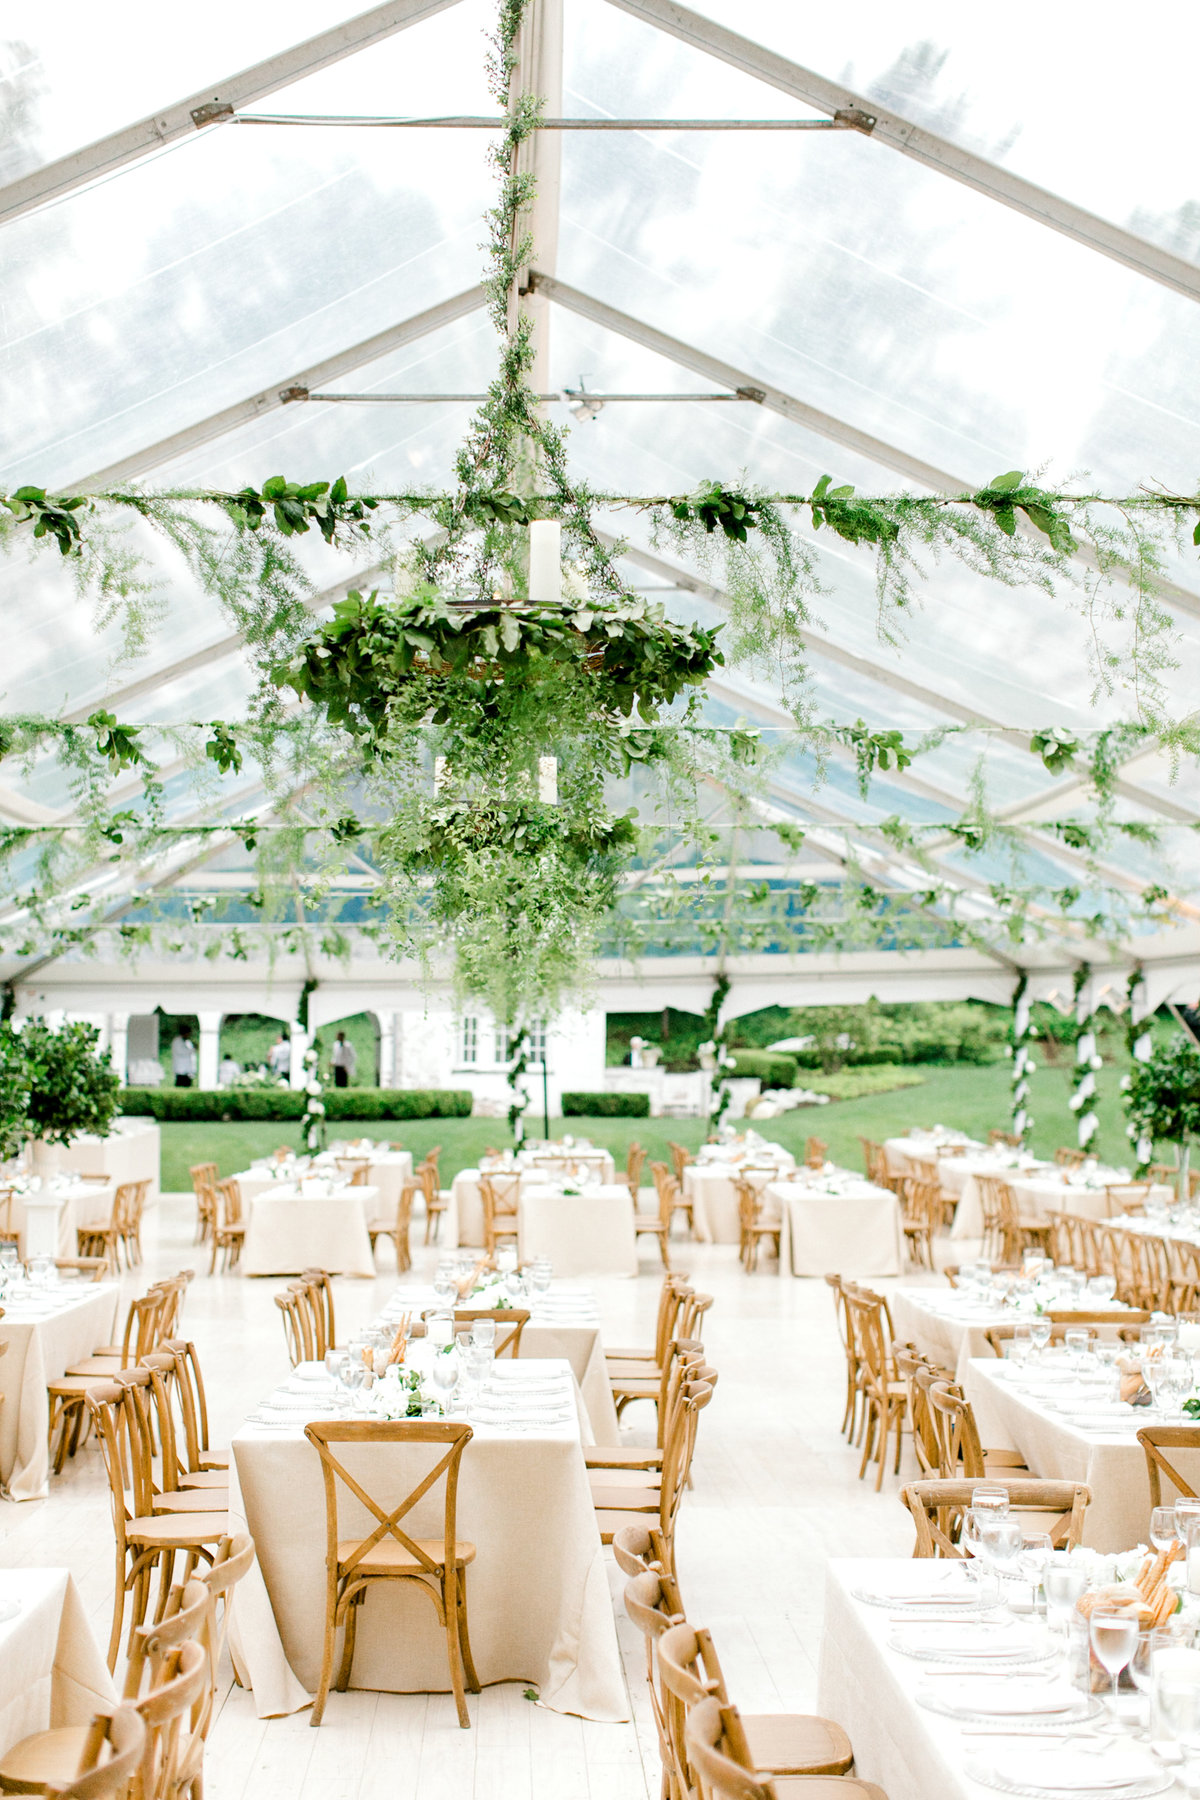 New-York-Private-Estate-Luxury-Tent-Wedding-Photo-Jessica-Haley-43